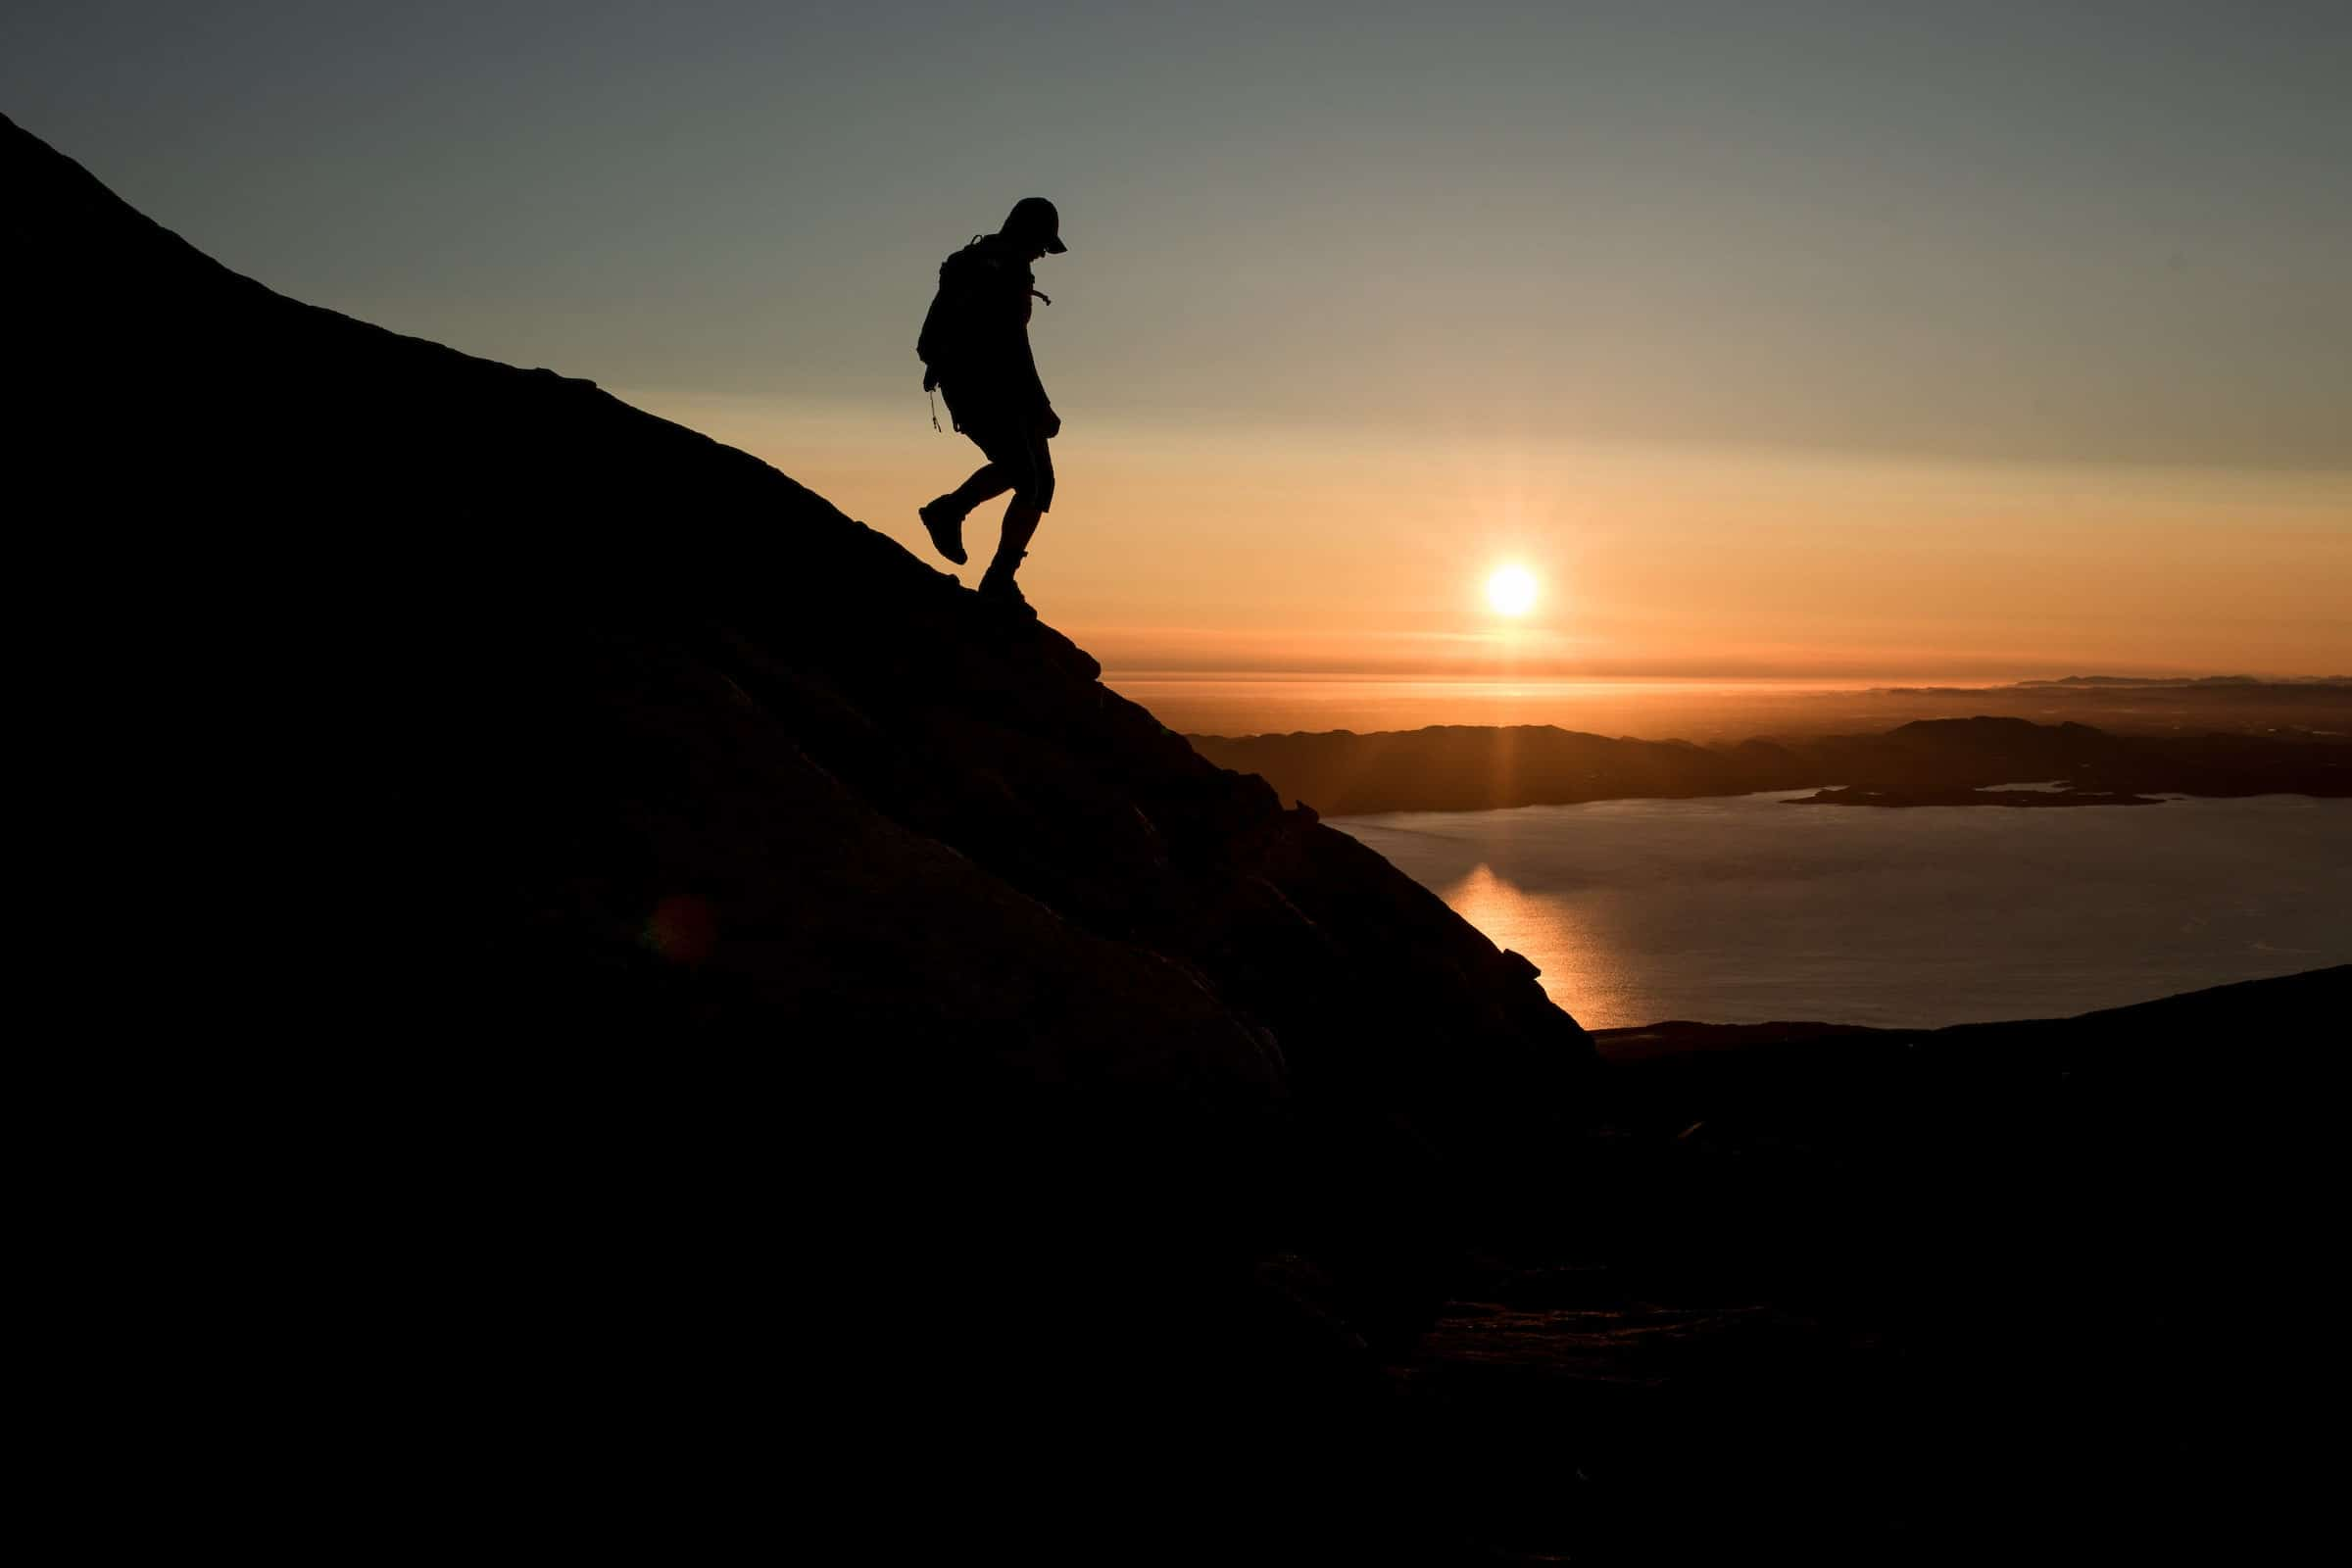 A hiker descending the mountain Ukkusissaq - Store Malene in the midnight sun outside Nuuk in Greenland. By Mads Pihl